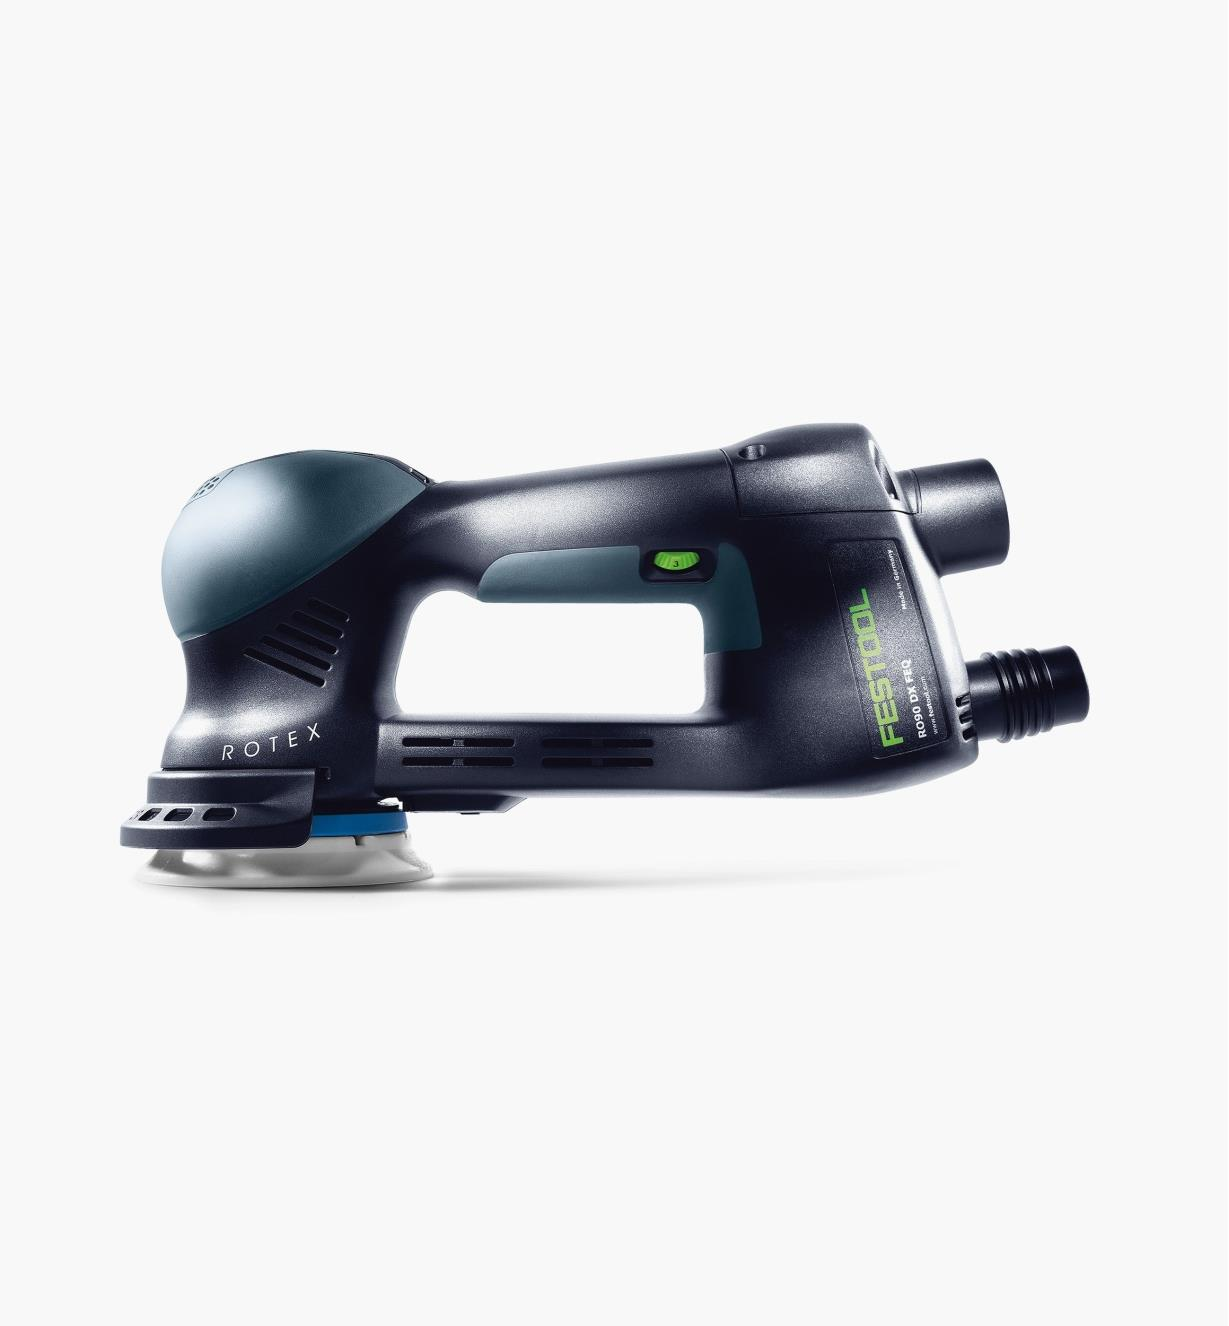 ZT571823 - Rotex RO 90 DX Multi-Mode Sander